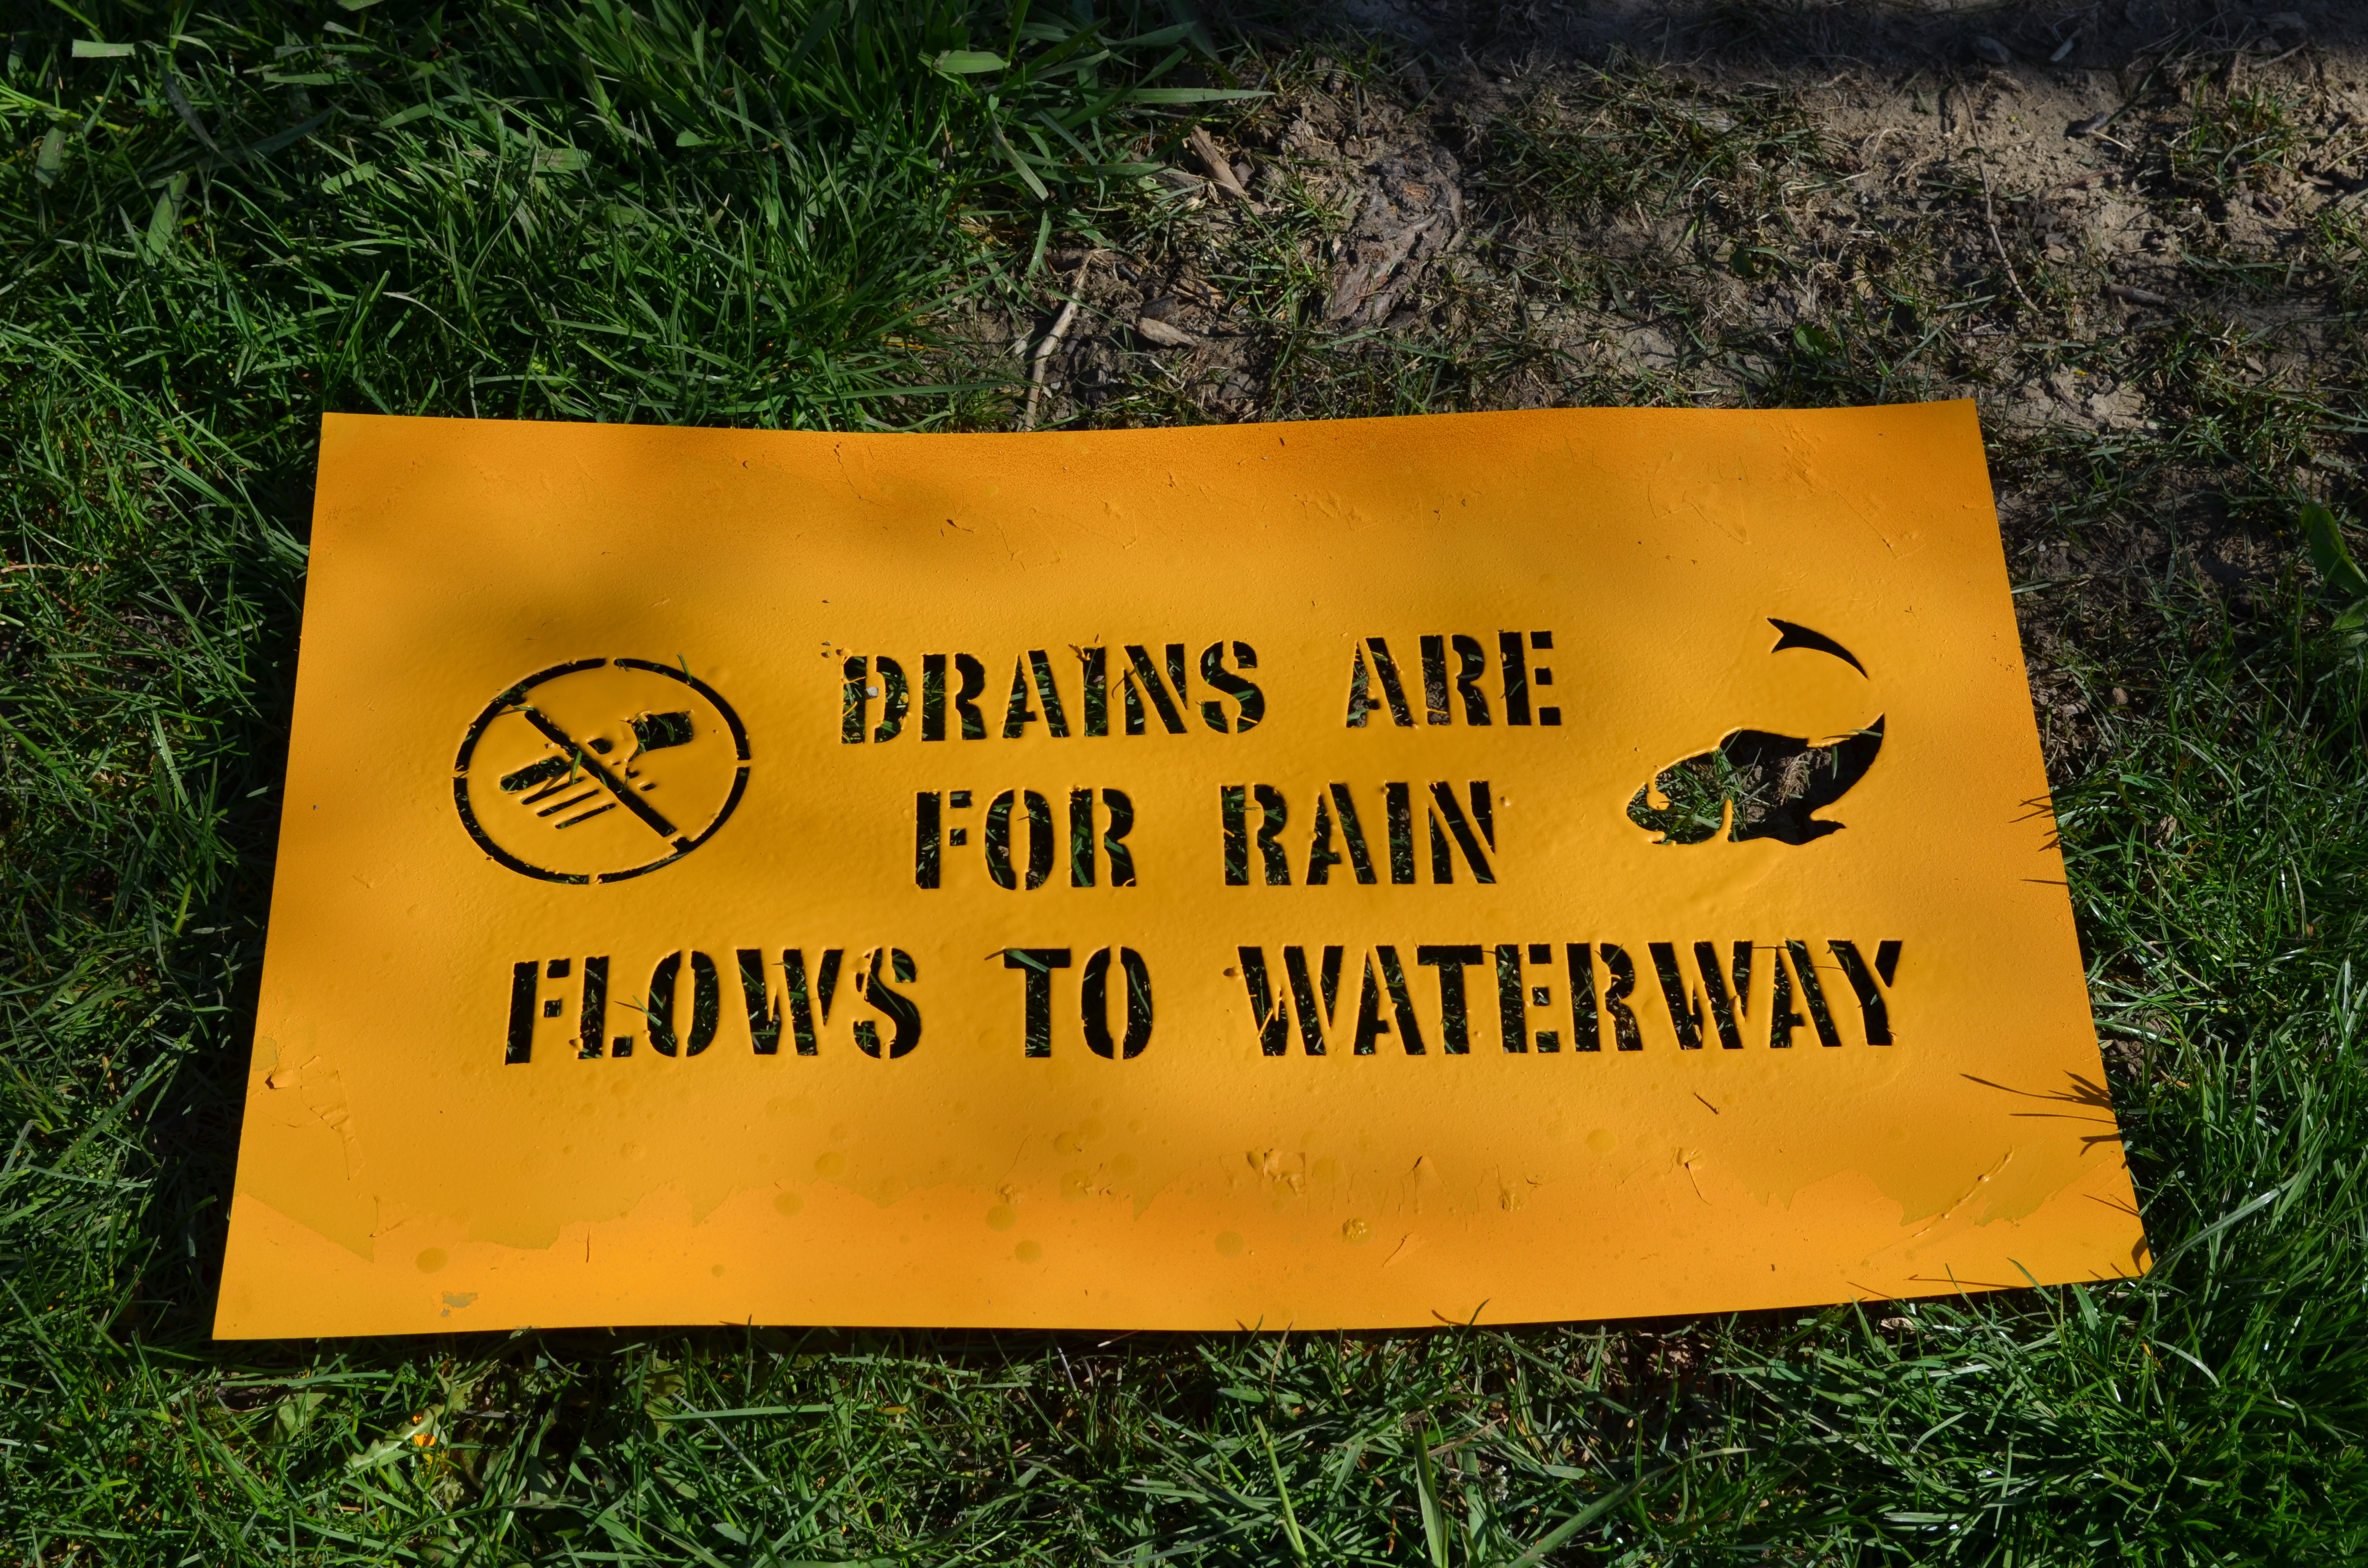 Yellow paint alerts us to keep 